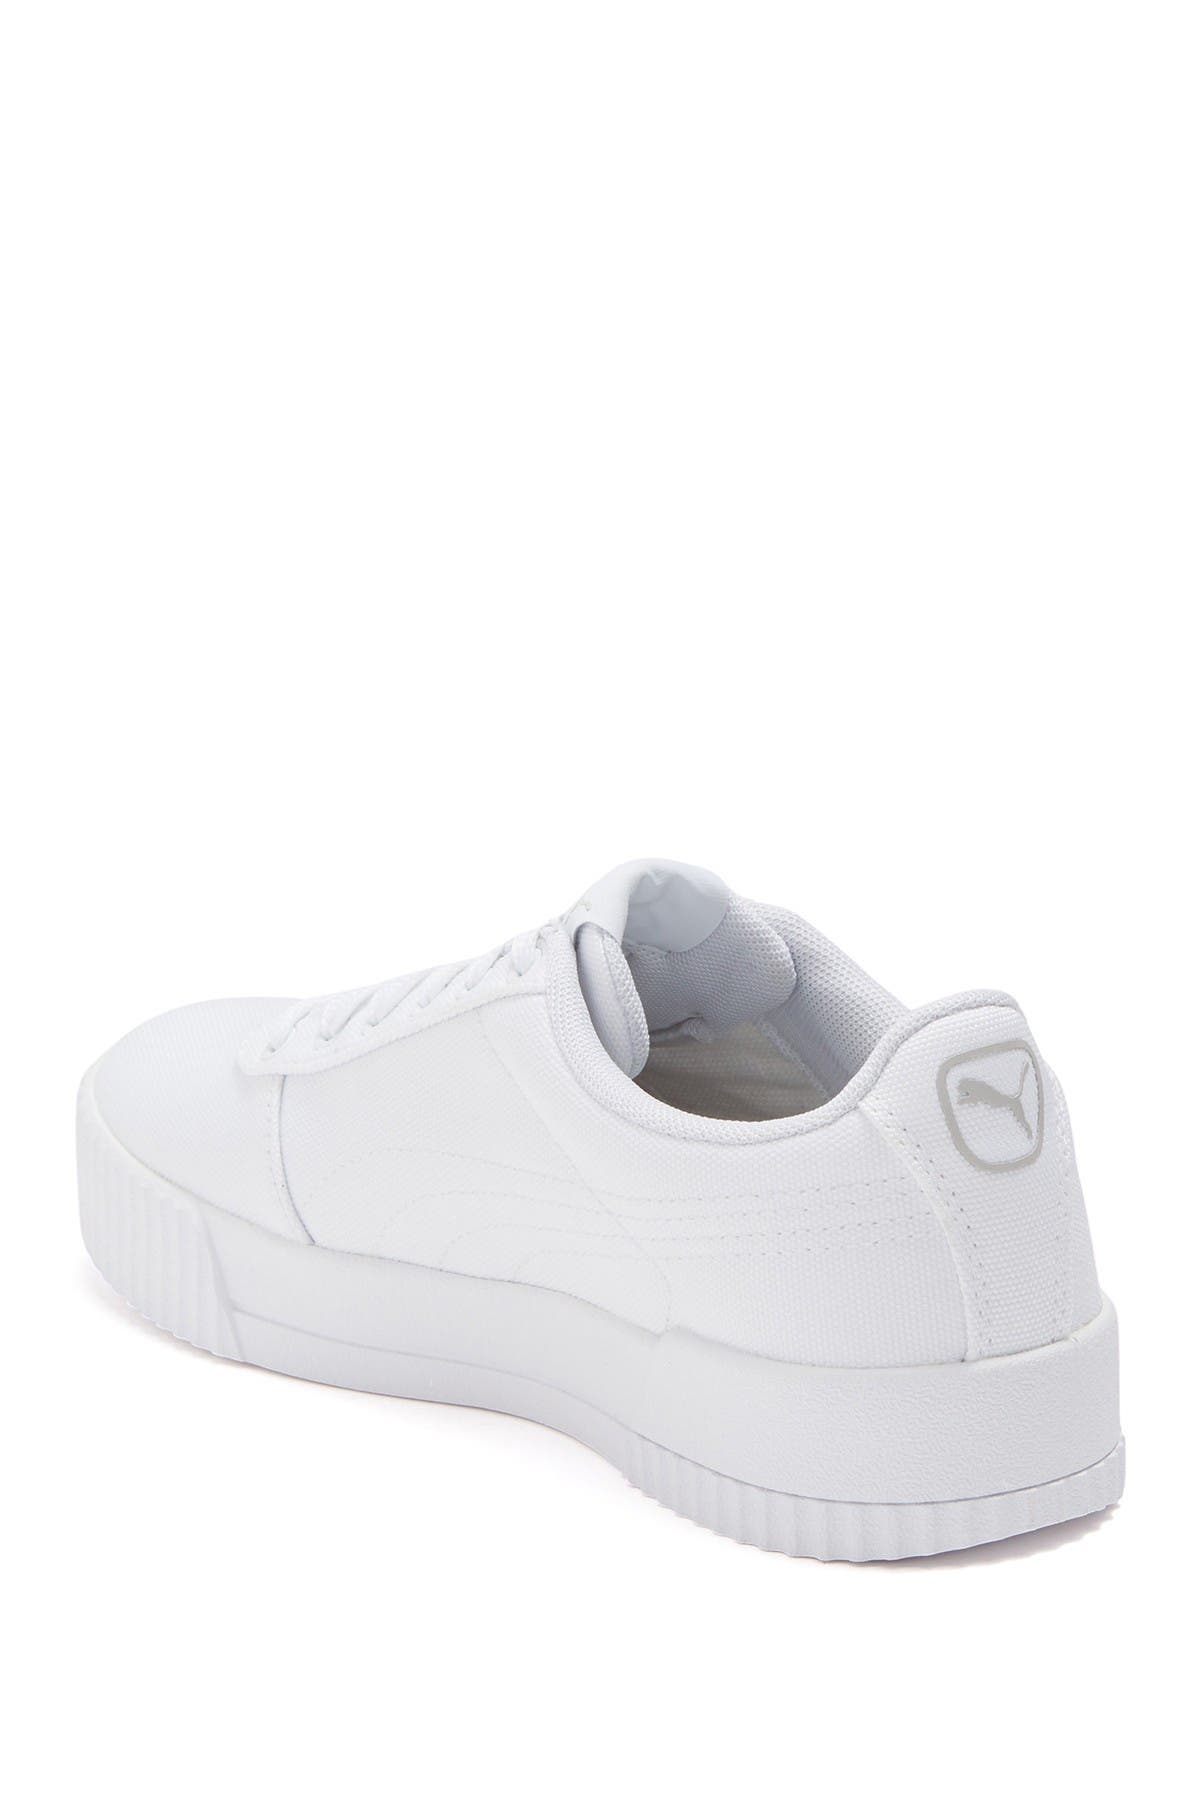 Image of PUMA Carina Summer Cat Sneaker